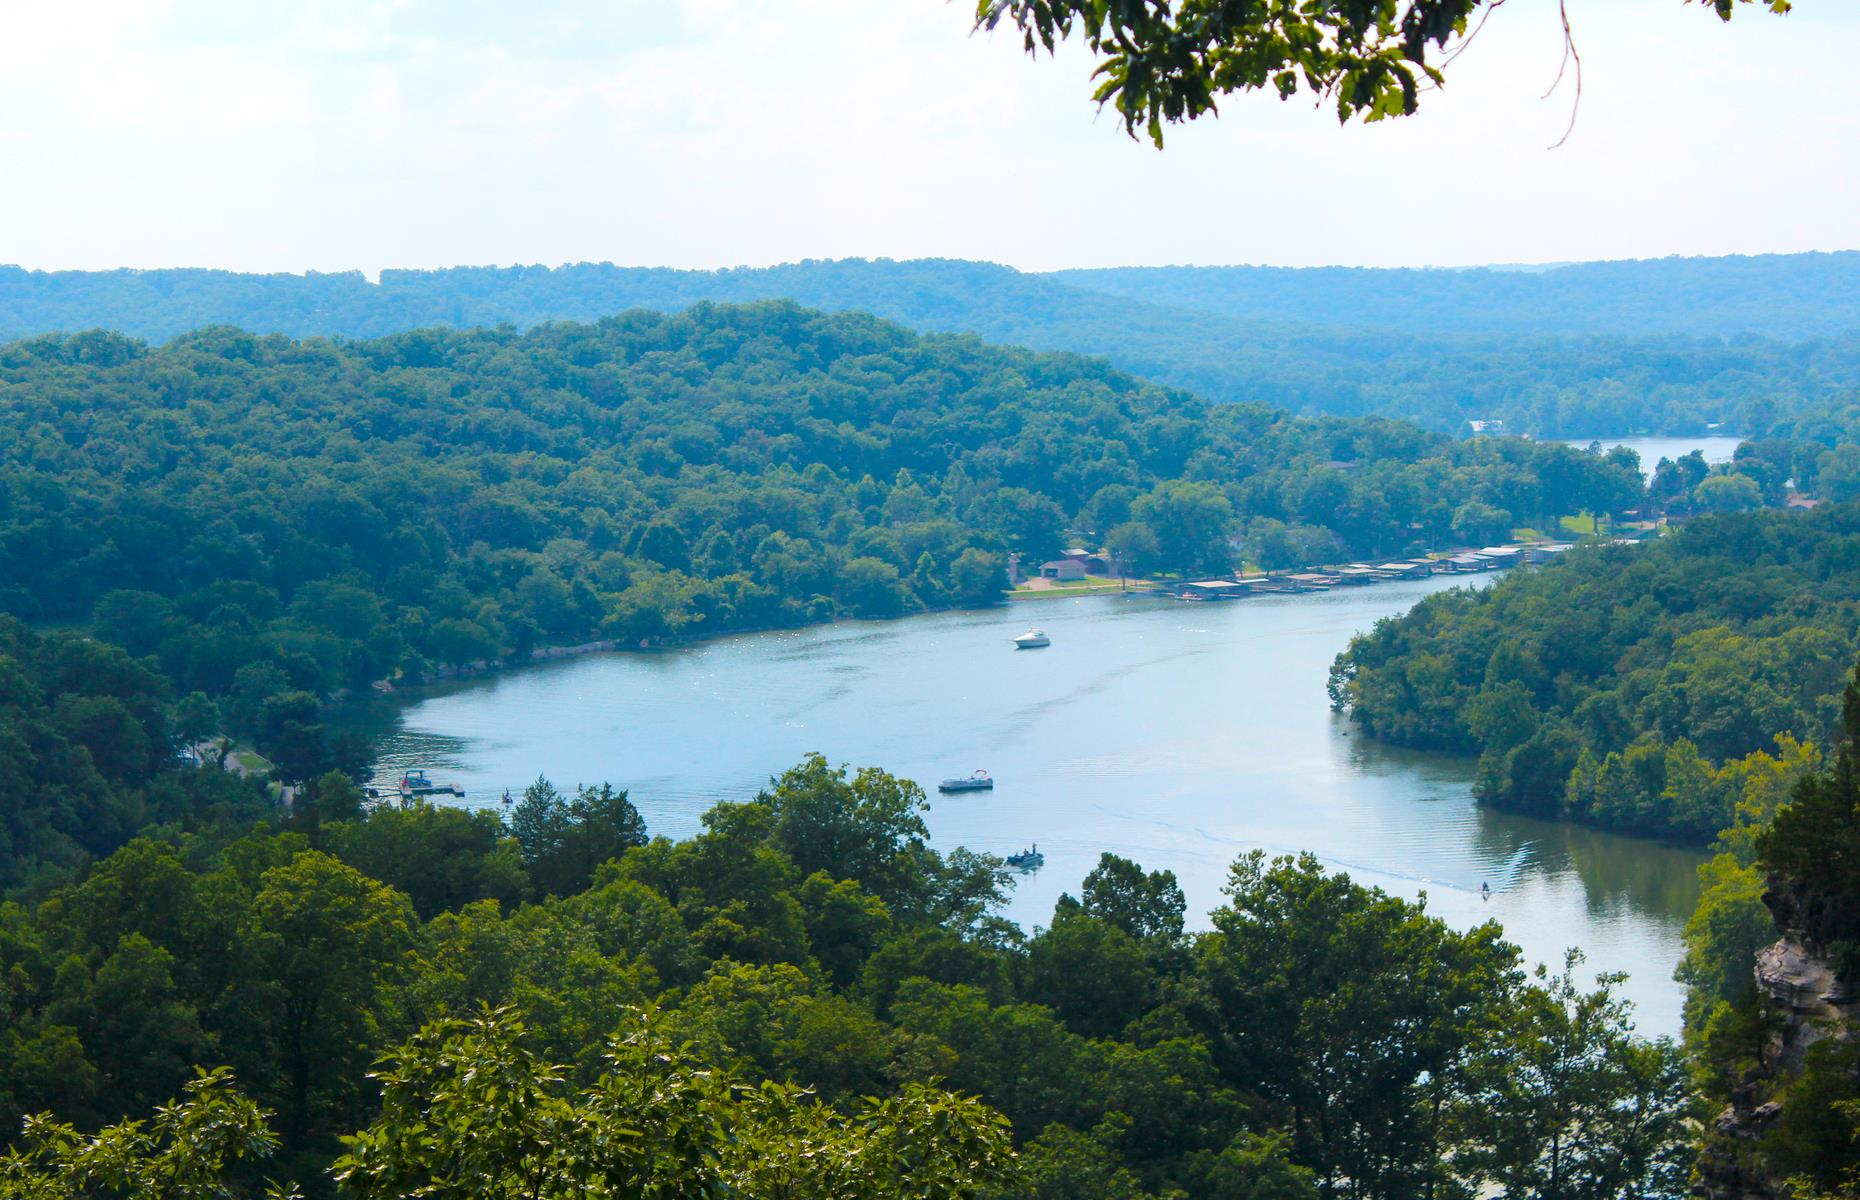 """Slide 50 of 101: An easy weekend escape from the buzzy city of Springfield, picturesque Camdenton is often billed as the """"Hub City of Lake of the Ozarks"""" (pictured). The little Ozarks city is reached by a pleasant 75-mile (121km) drive, much of which is along bucolic MO-73, and driverscan be in Camdenton within one hour 30 minutes."""